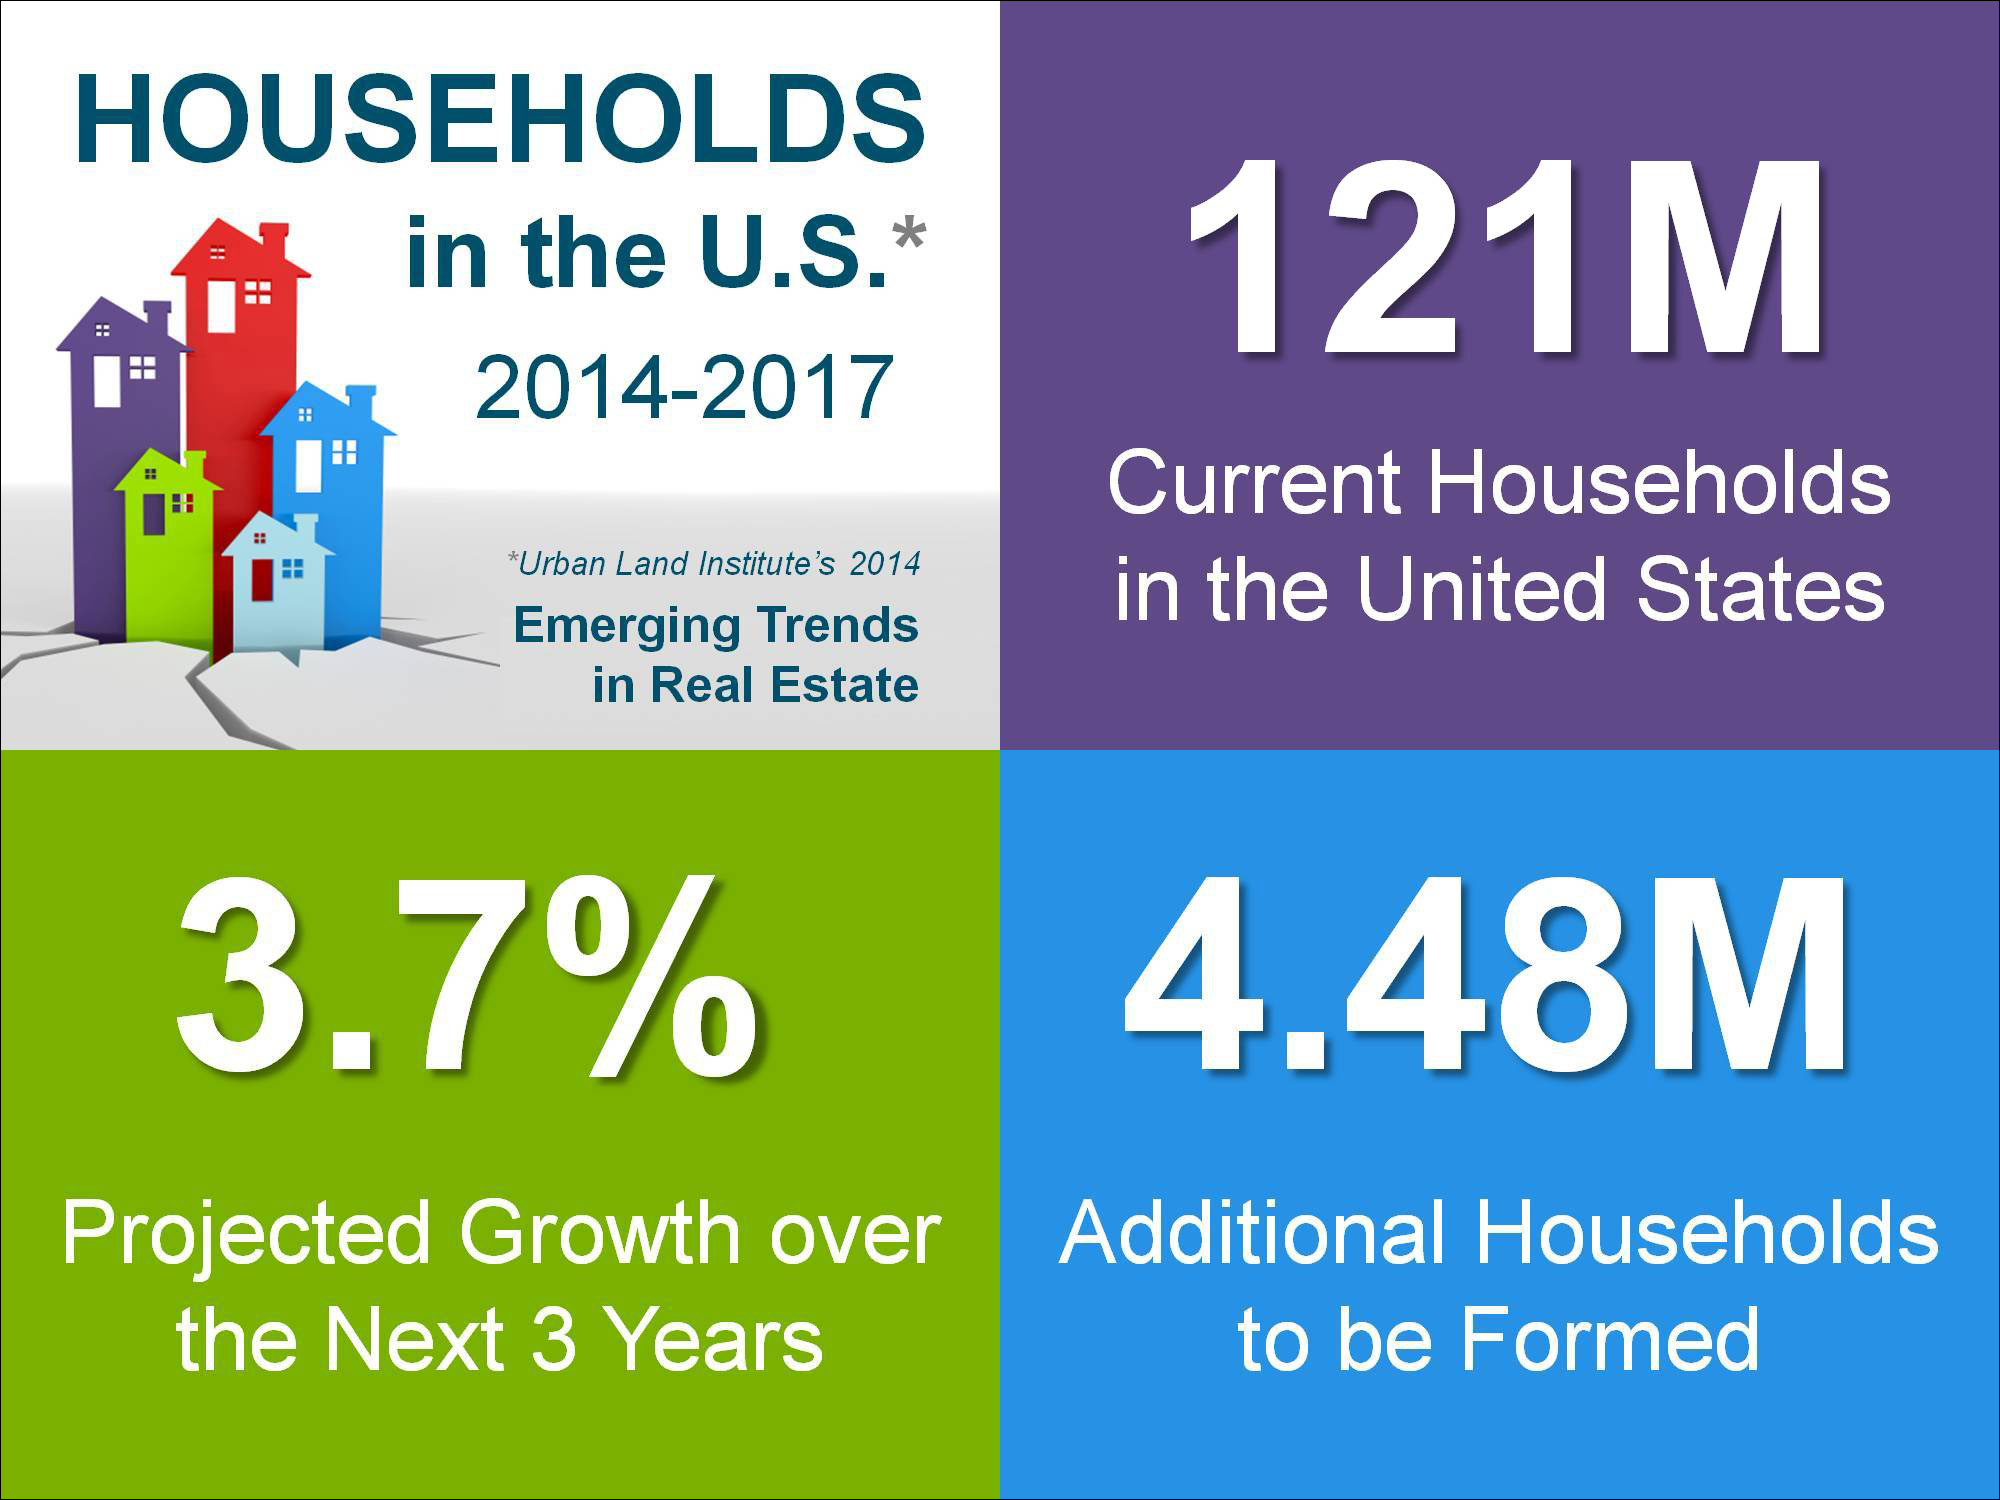 Keeping Current Matters | Household Formations Projected to Surge ...